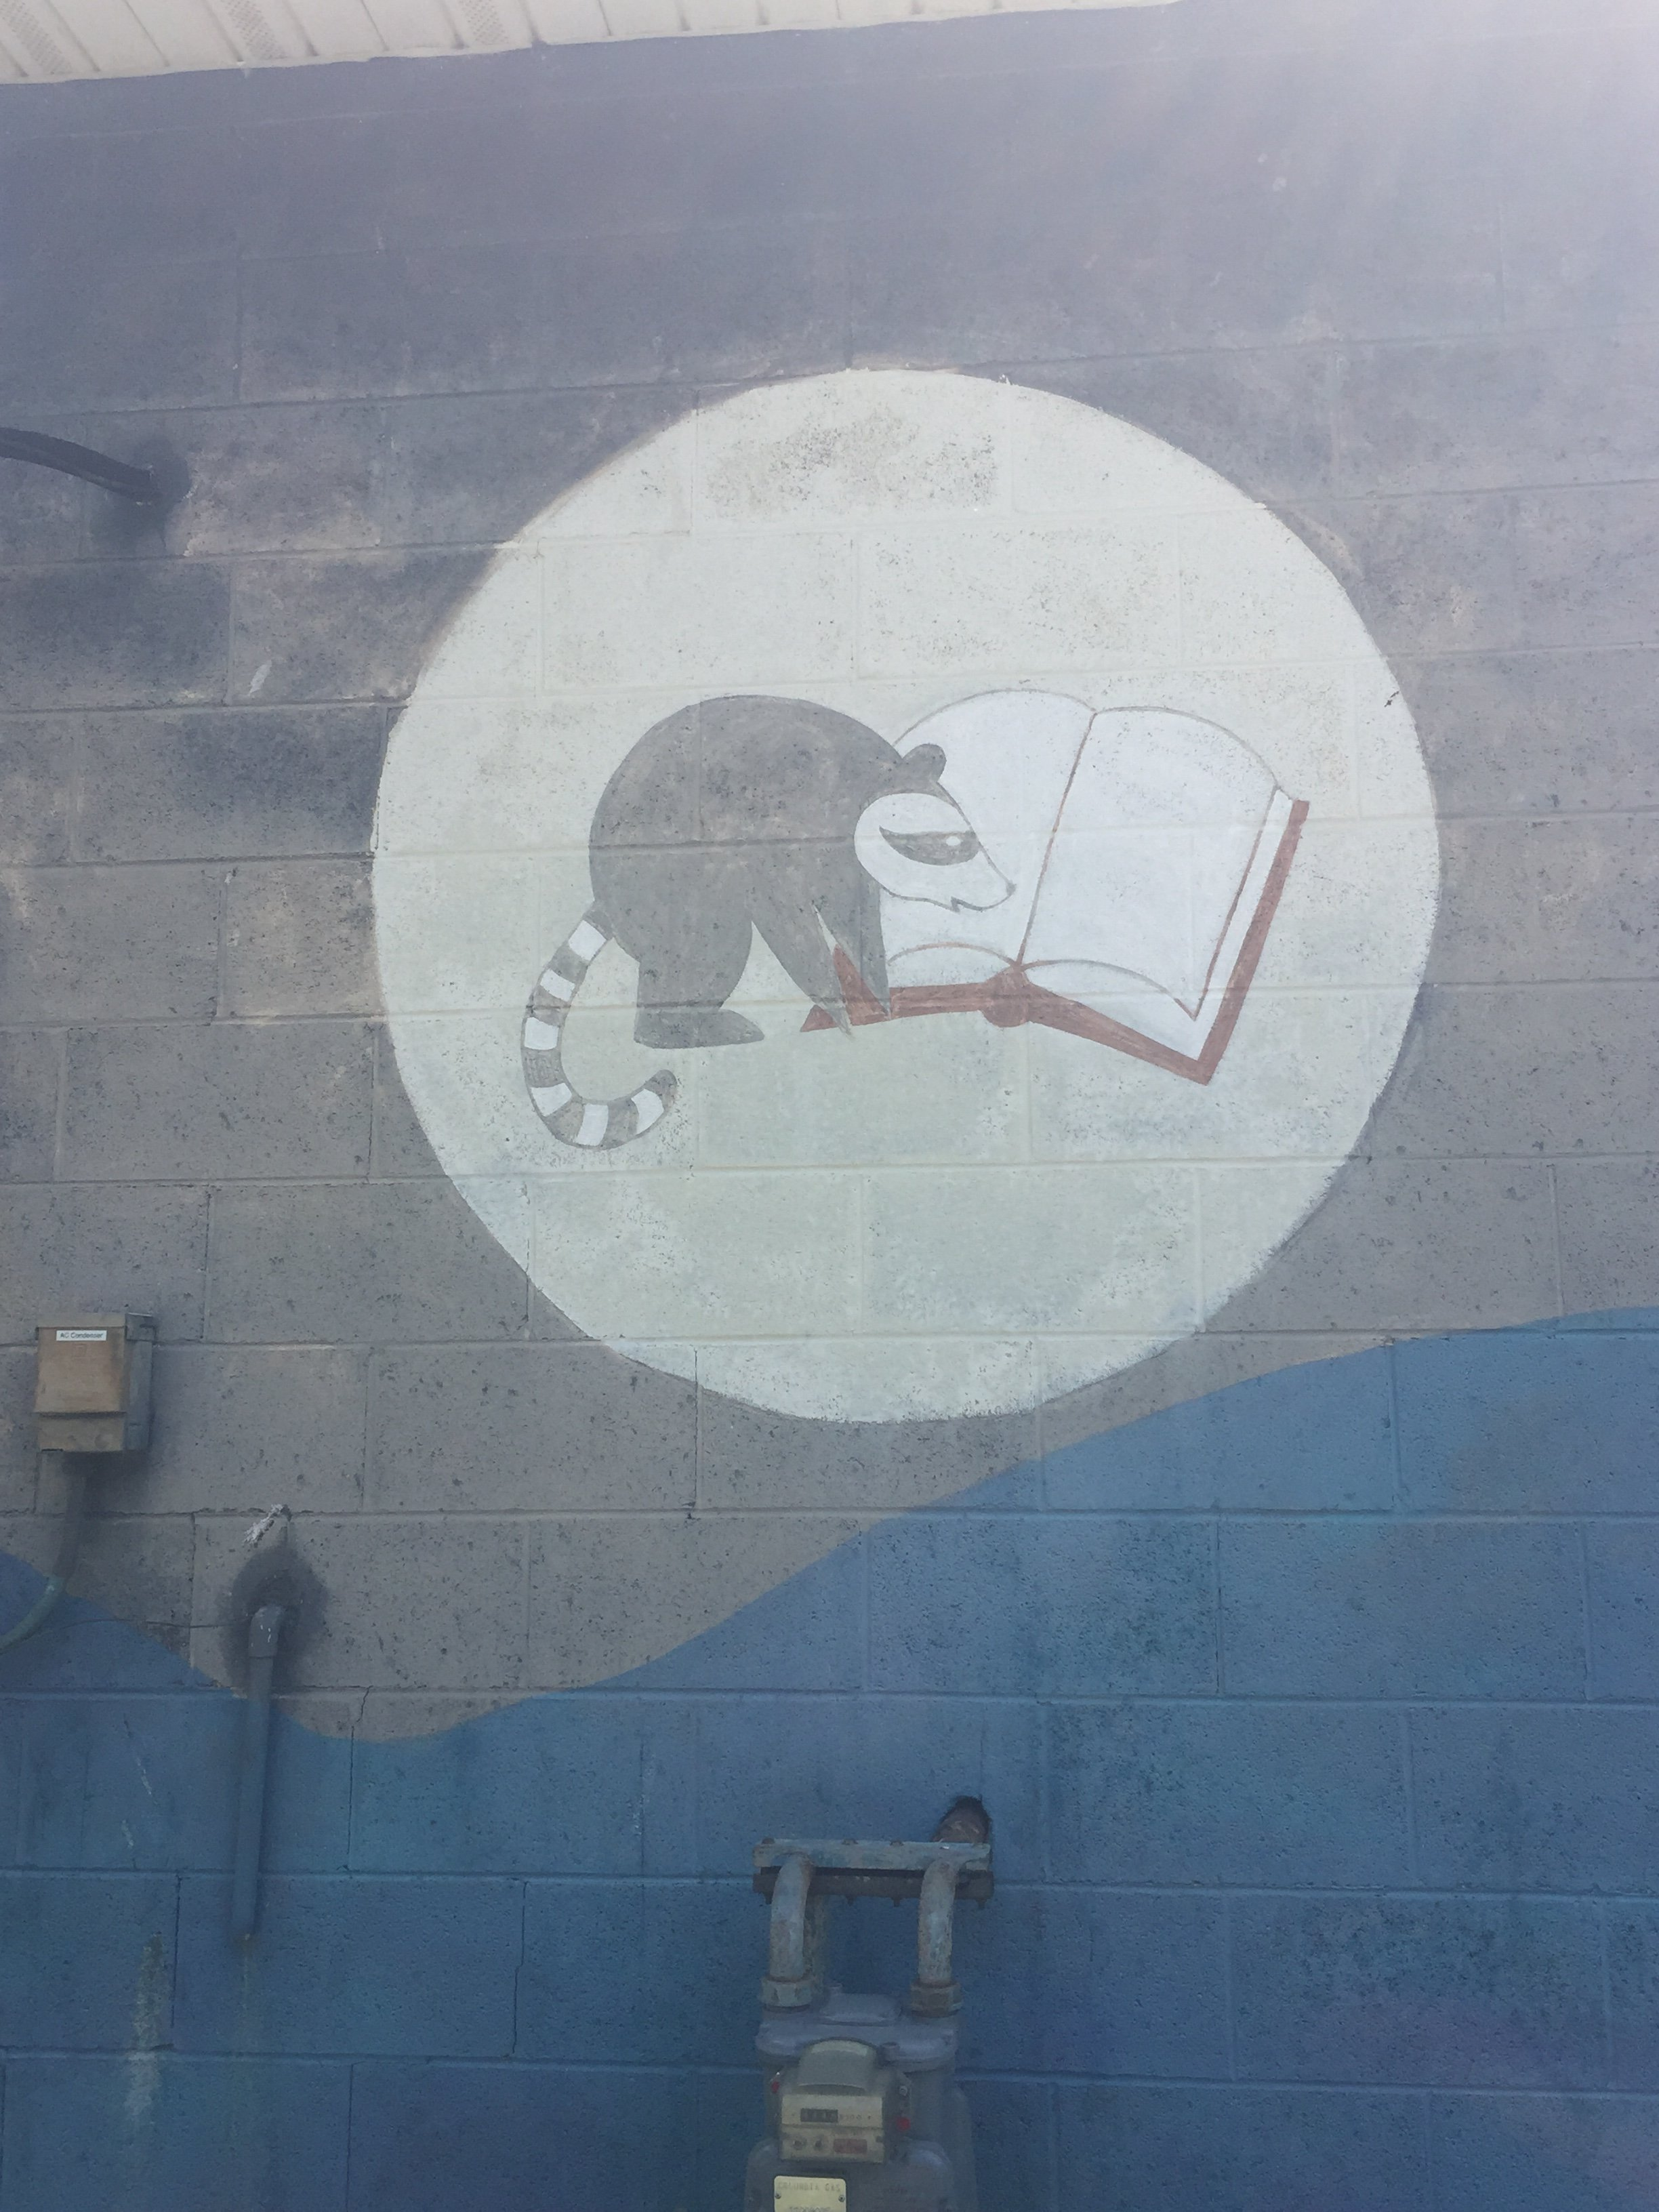 Along with the blurb above, the post office exterior also hosts a raccoon reading a book! Photo by J Hazen on June 12, 2017.